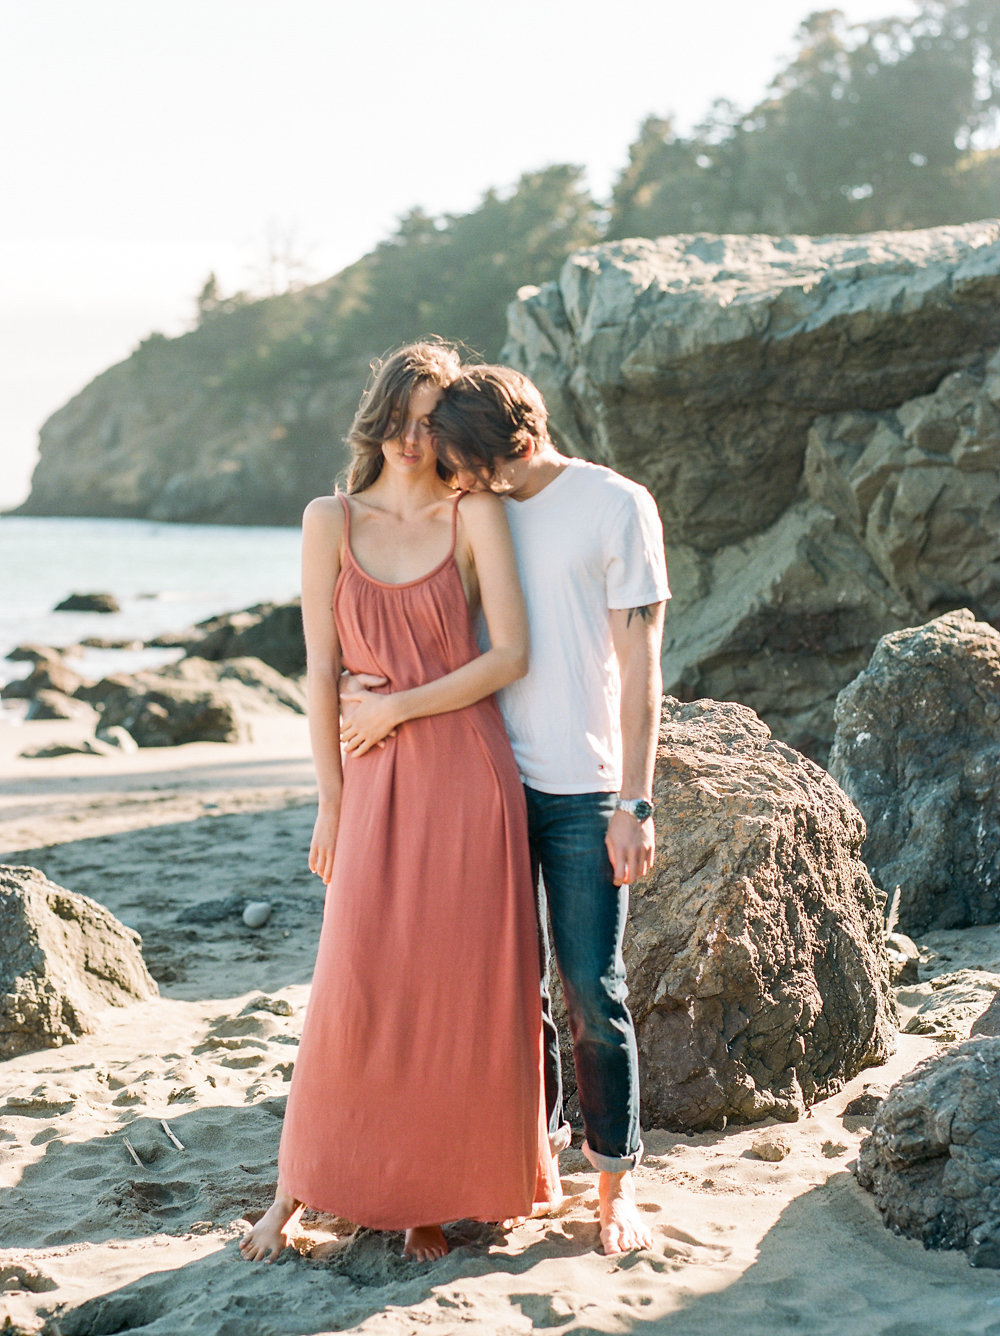 Muir Beach Engagement Session | Lissa Ryan Photography | Linda Ha Events | Beach Engagement | Natural Engagement Session | Joy Wed | Canadian Wedding Blog | Fine Art Wedding Blog